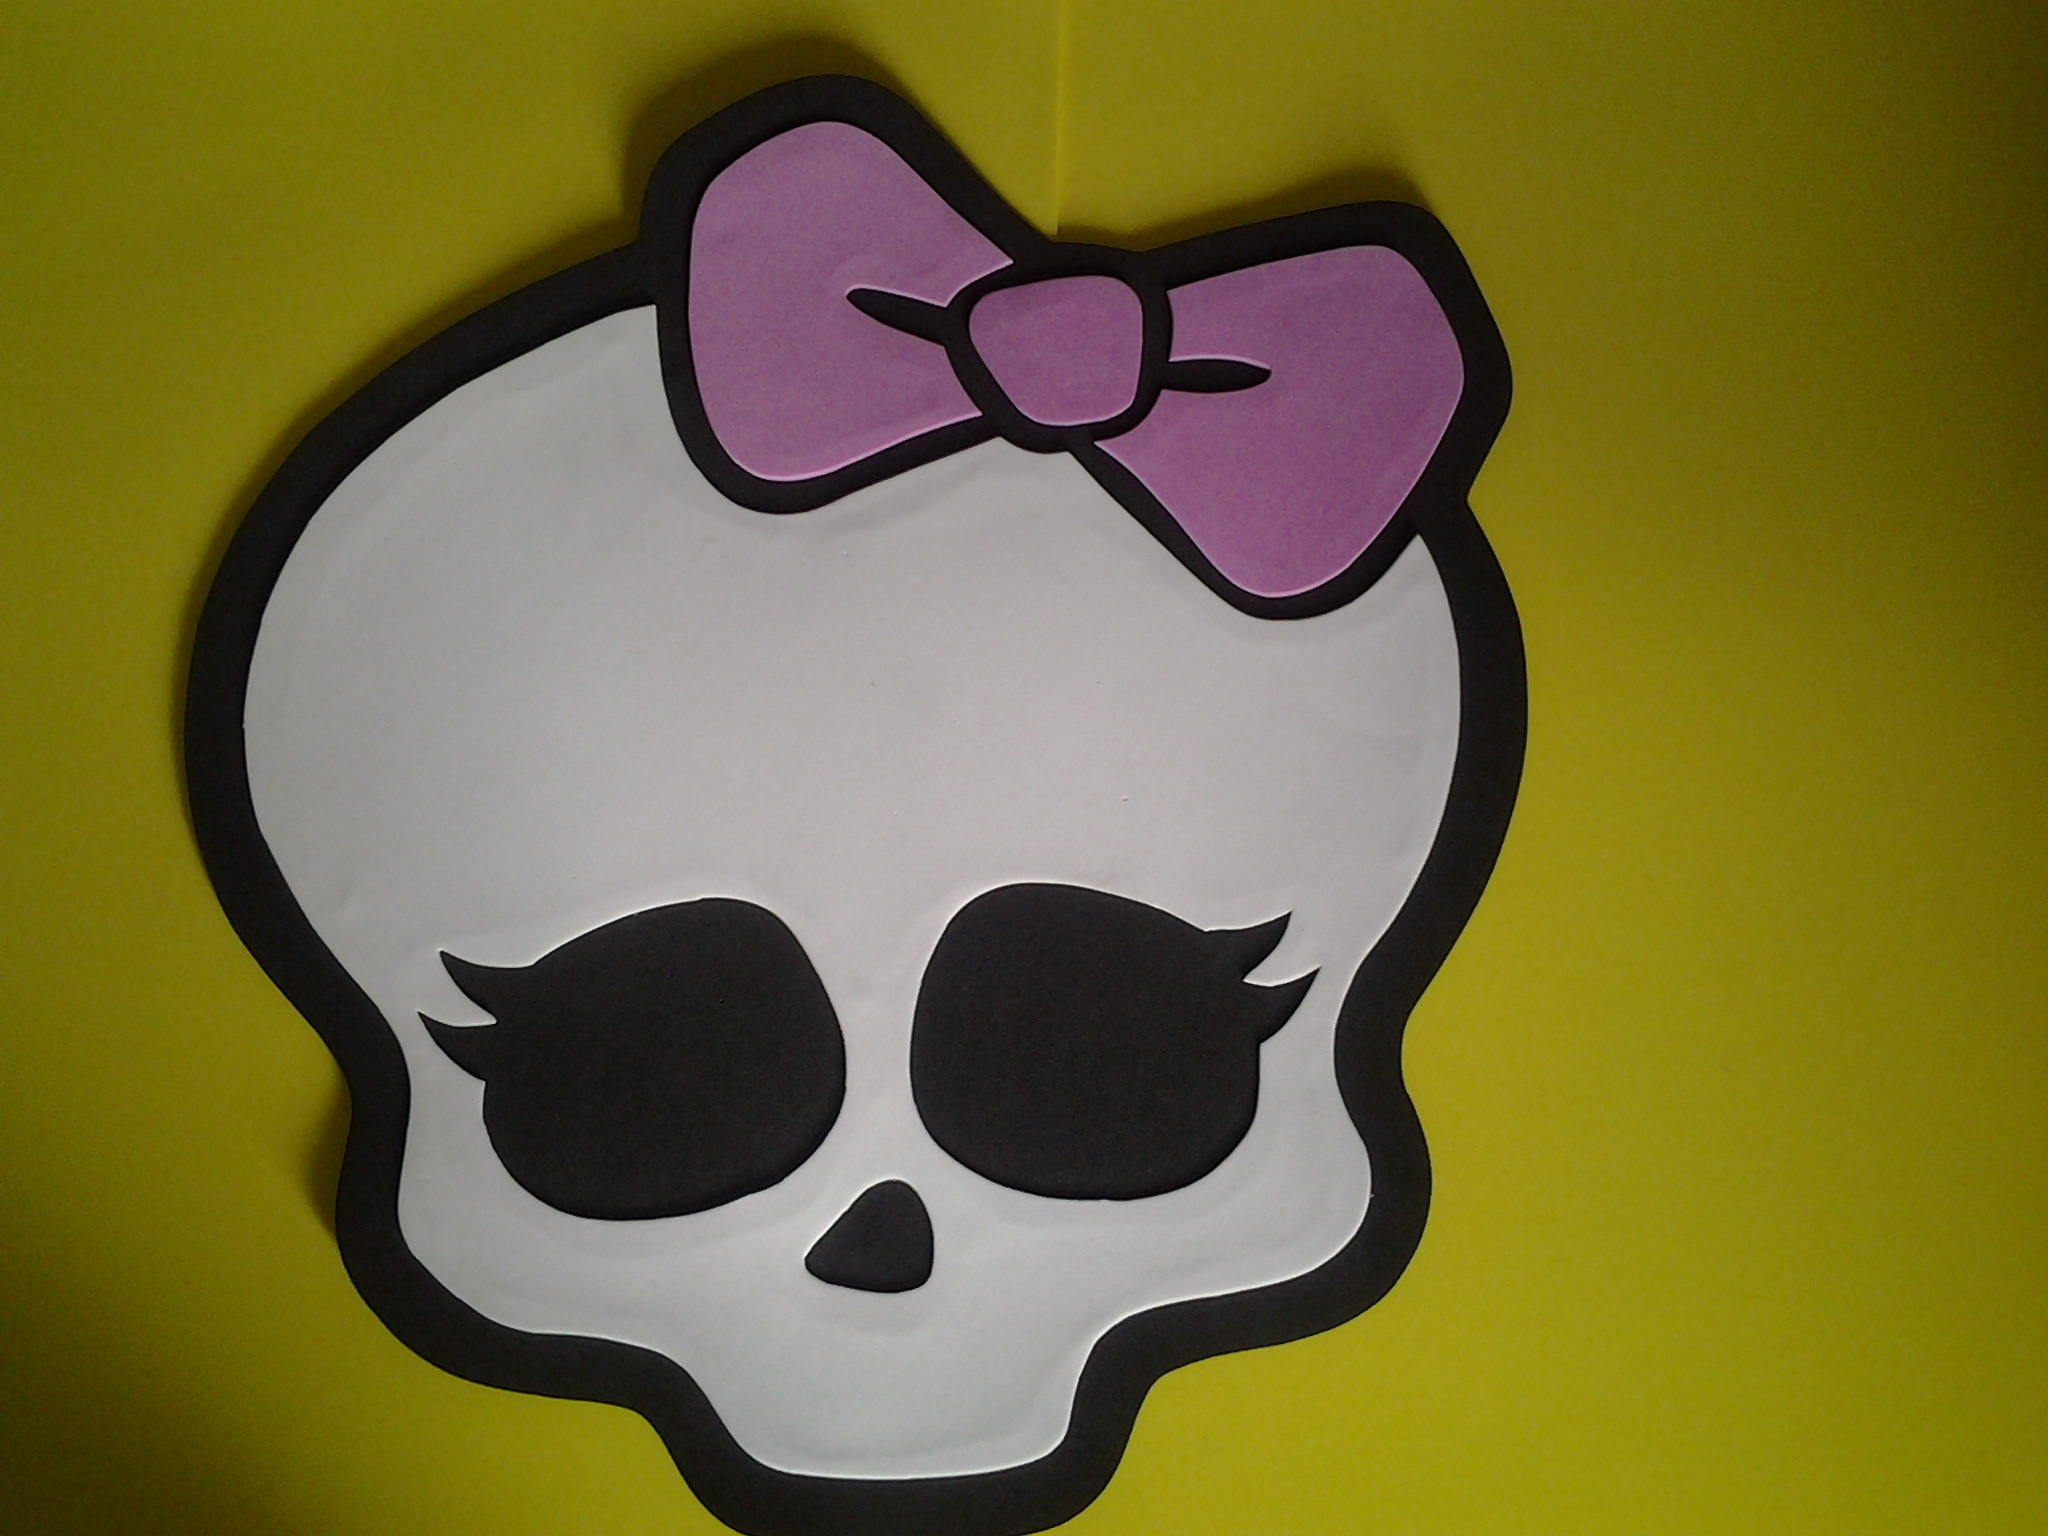 Placa De Eva Da Monster High Placa De Eva Da Monster High